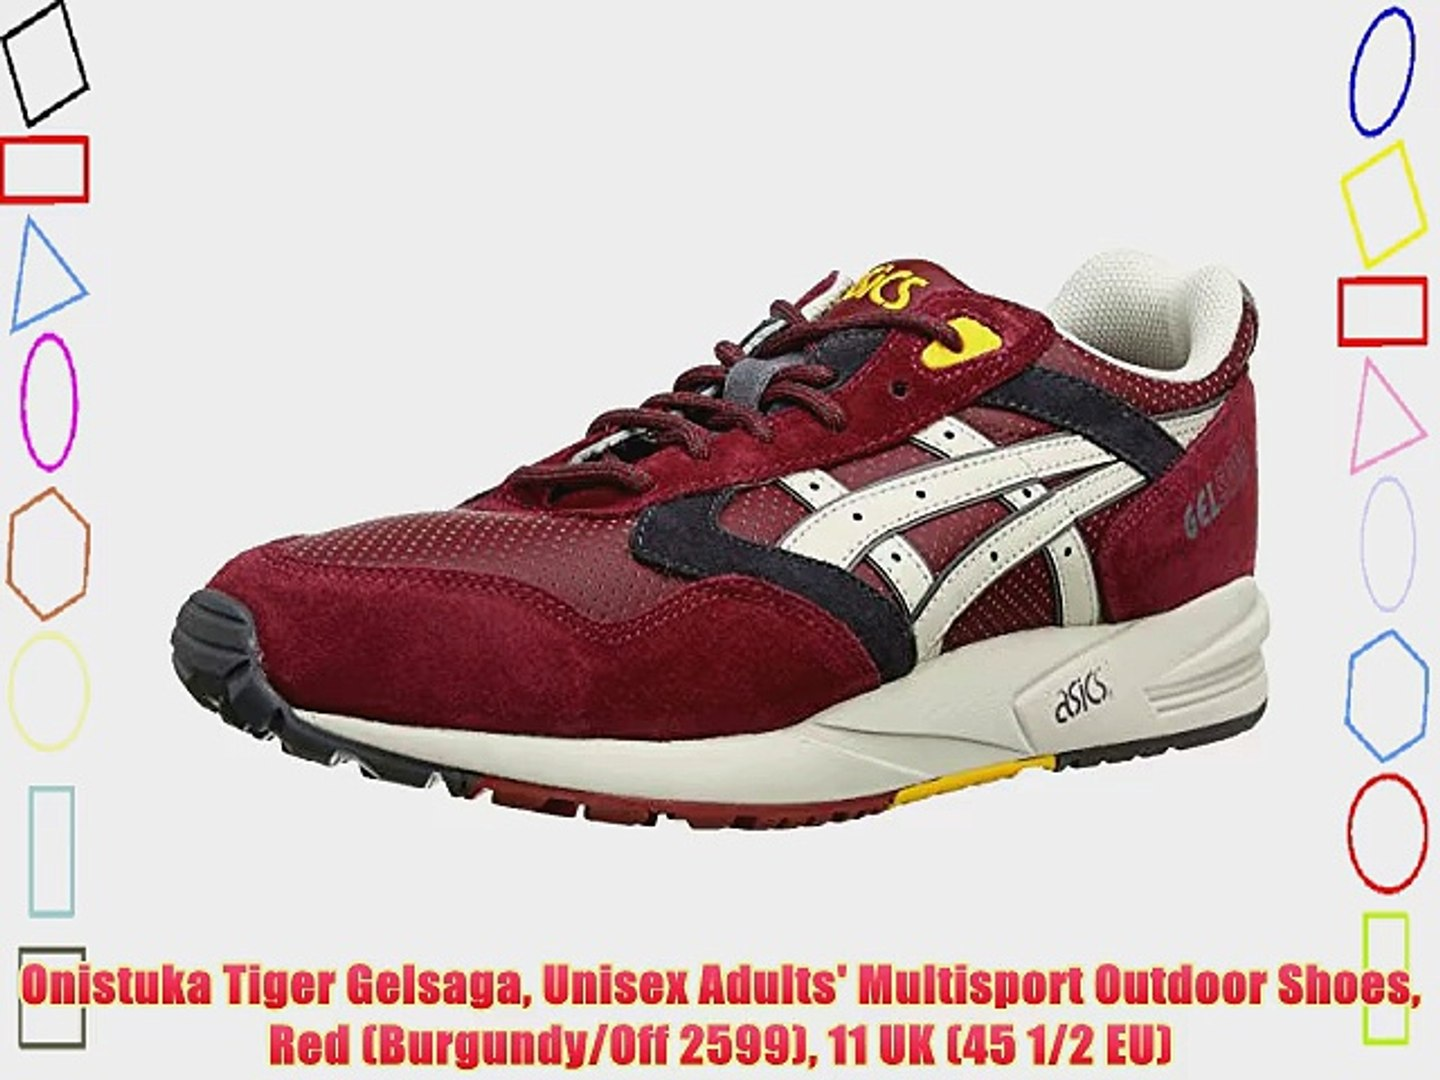 Onistuka Tiger Gelsaga Unisex Adults' Multisport Outdoor Shoes Red (Burgundy/Off 2599) 11 UK